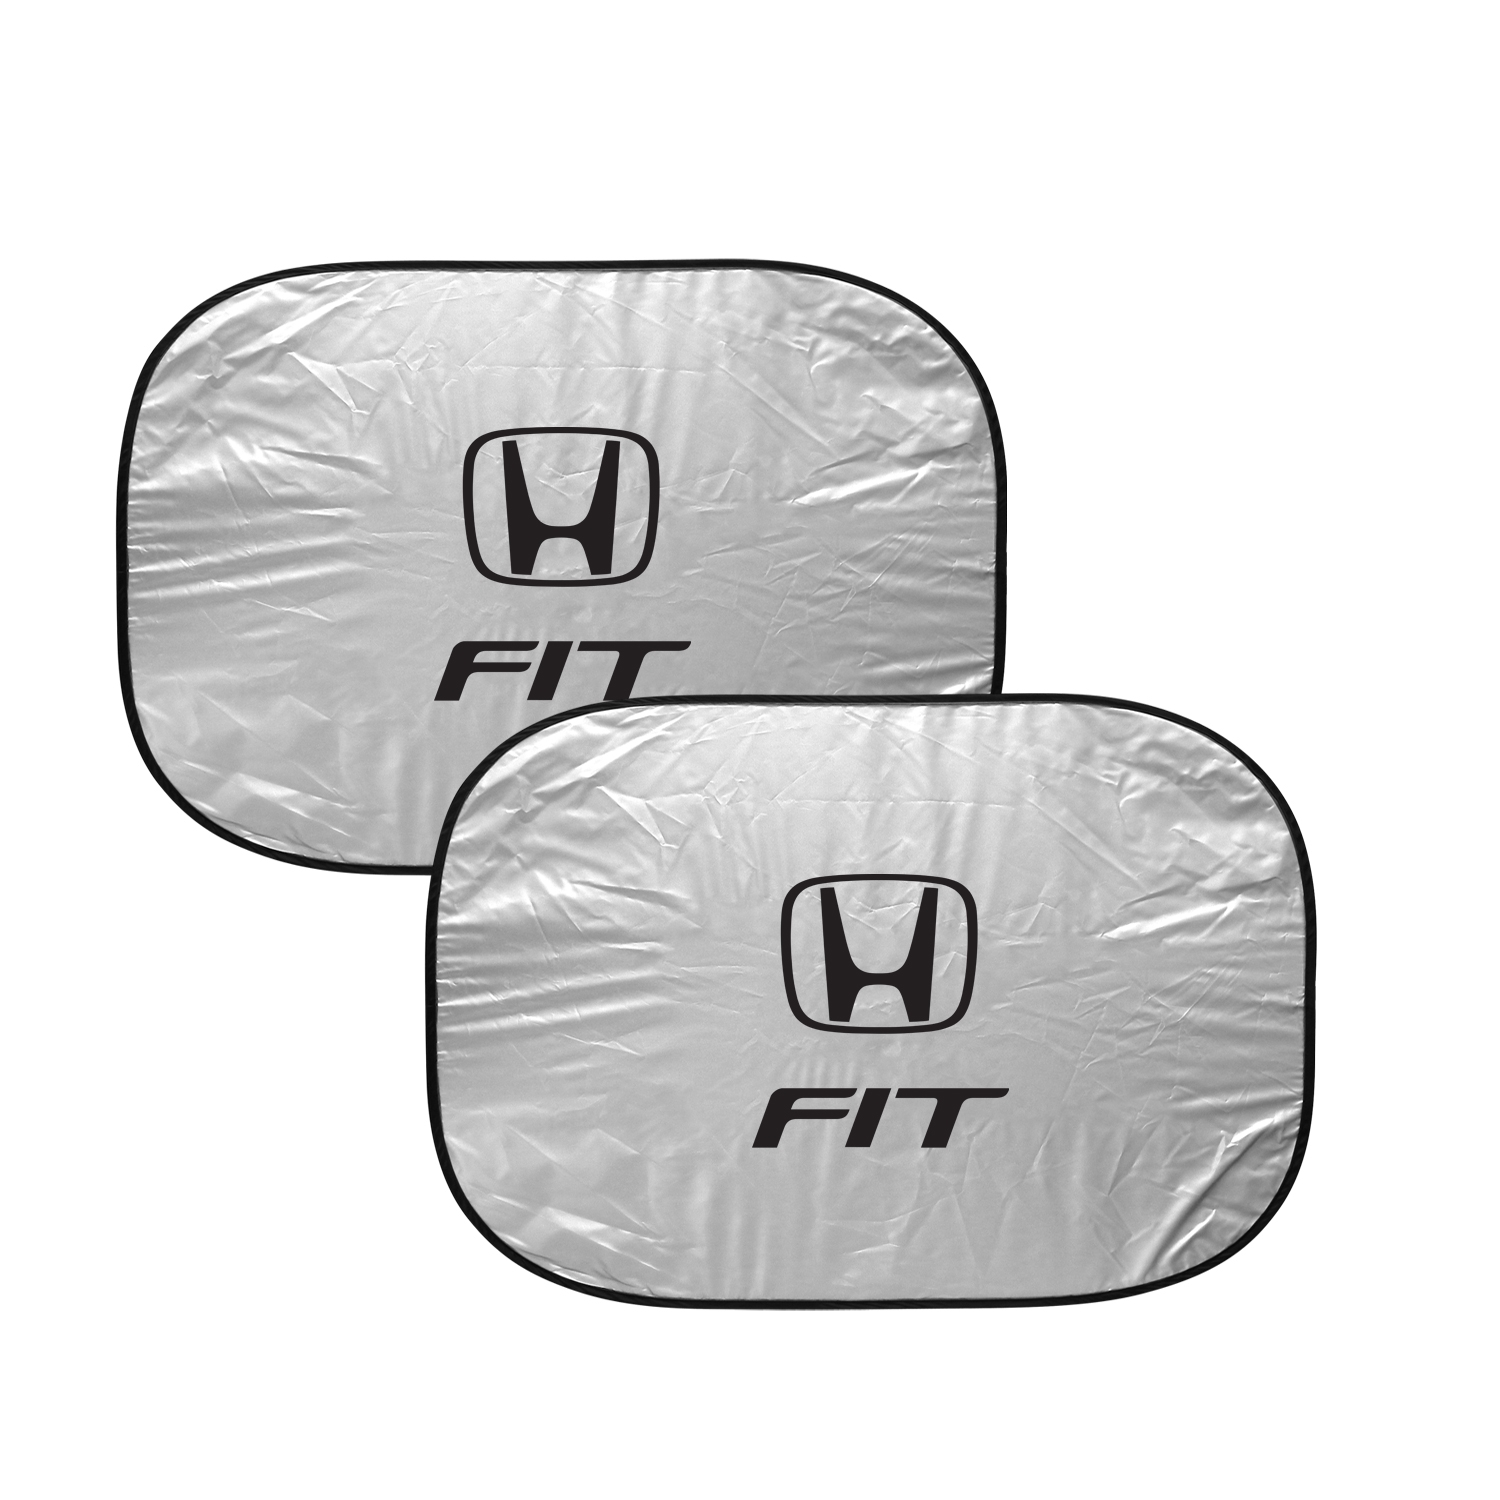 Honda Fit Dual Panels Easy Folding Windshield Sun Shade for Cars and Small SUVs